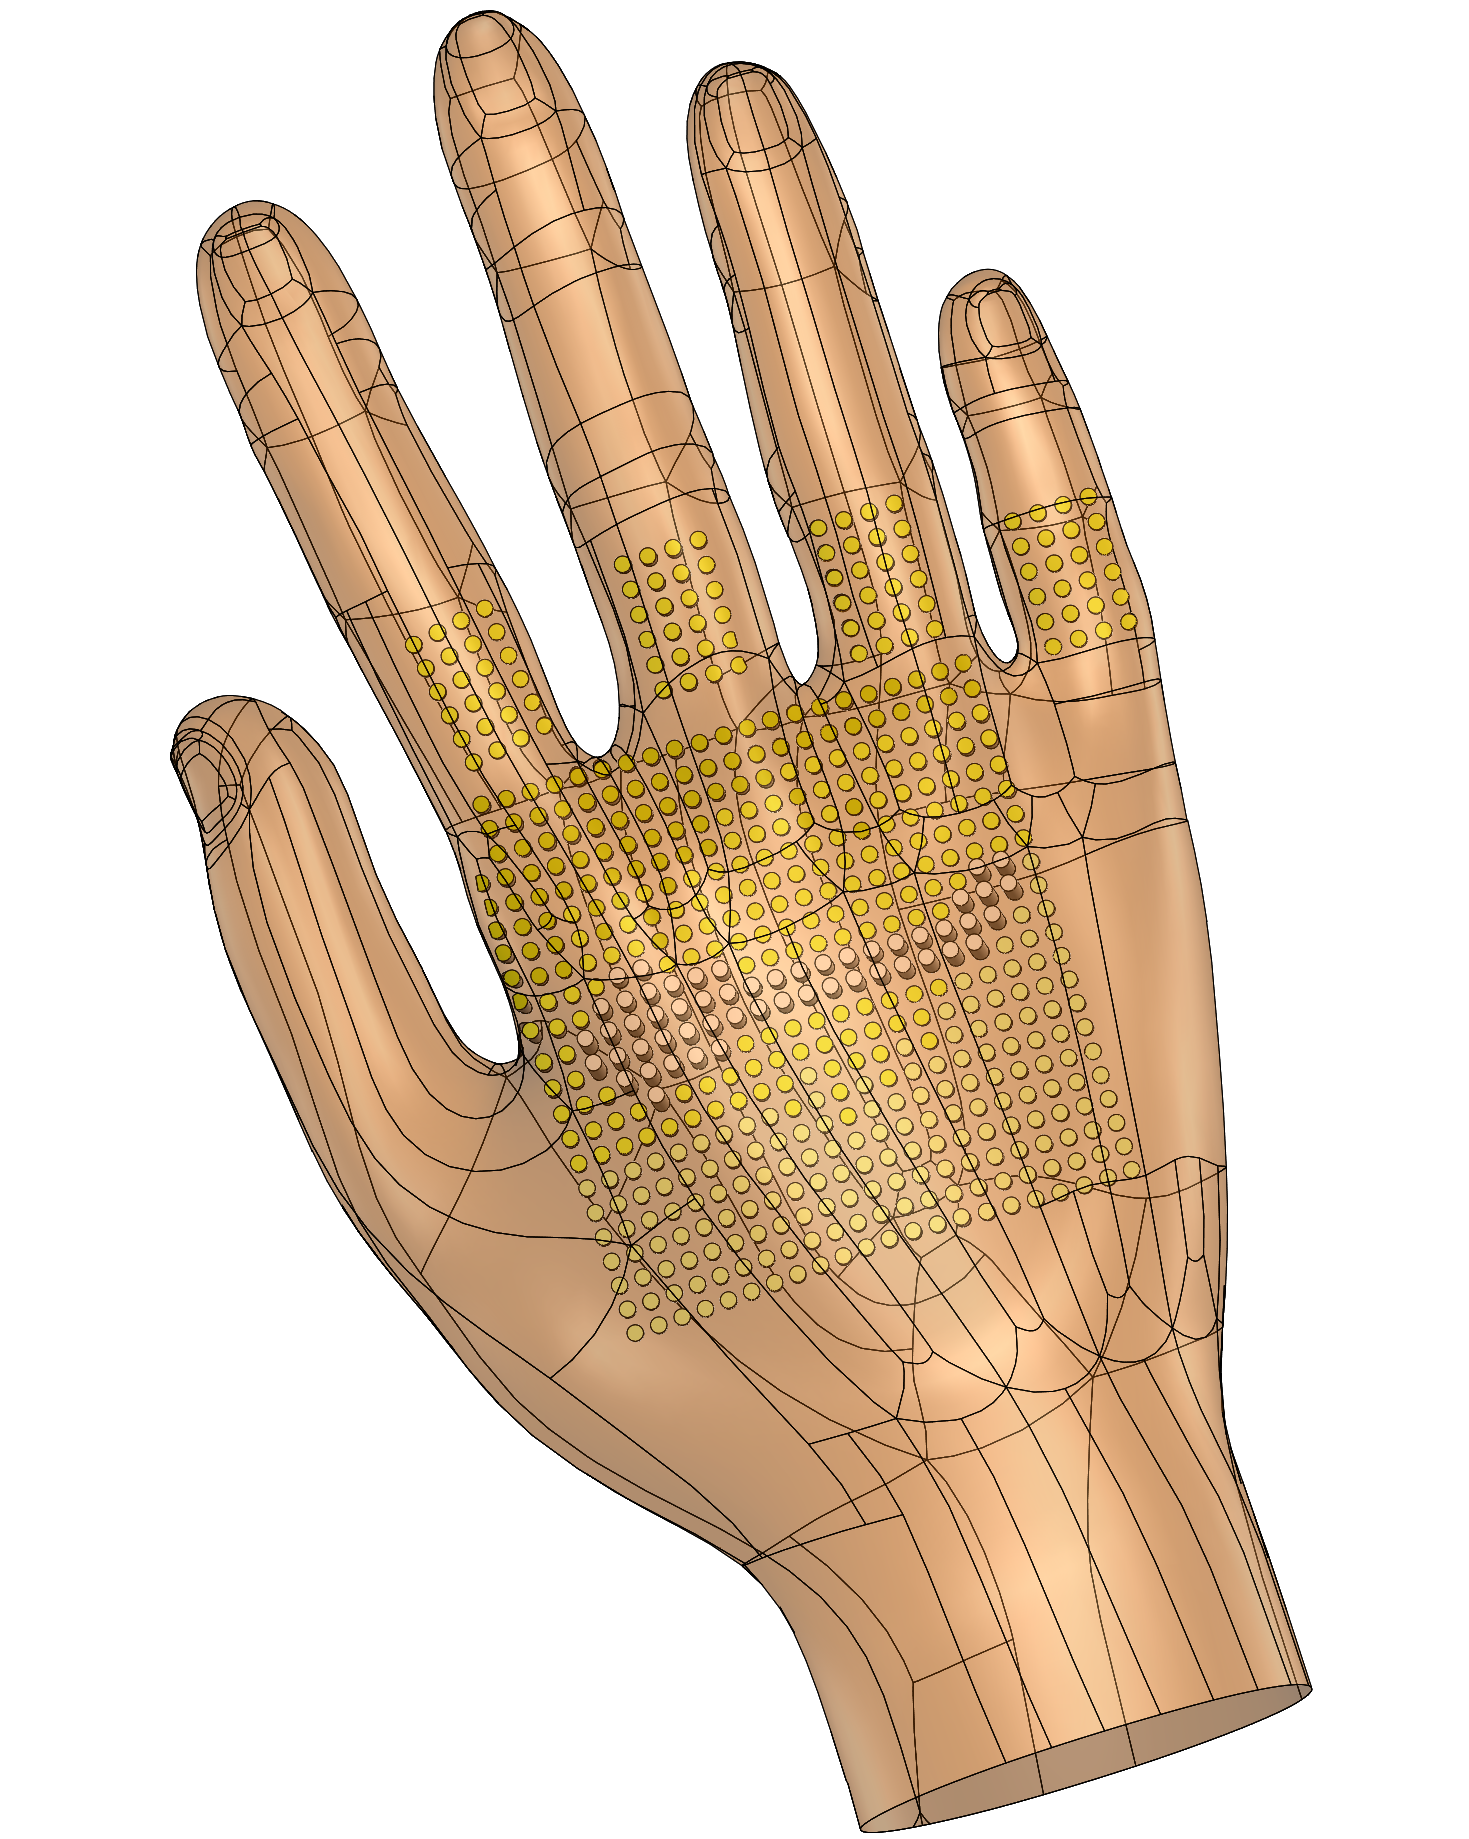 An array of small, cylindrical pins prompts users to position their hand to grasp a desired object. The photo shows a graphic image of the glove's technology. Yellow dots represent the cylindrical pins. There is a square patch on the palm of yellow dots and additional ones on the finger.